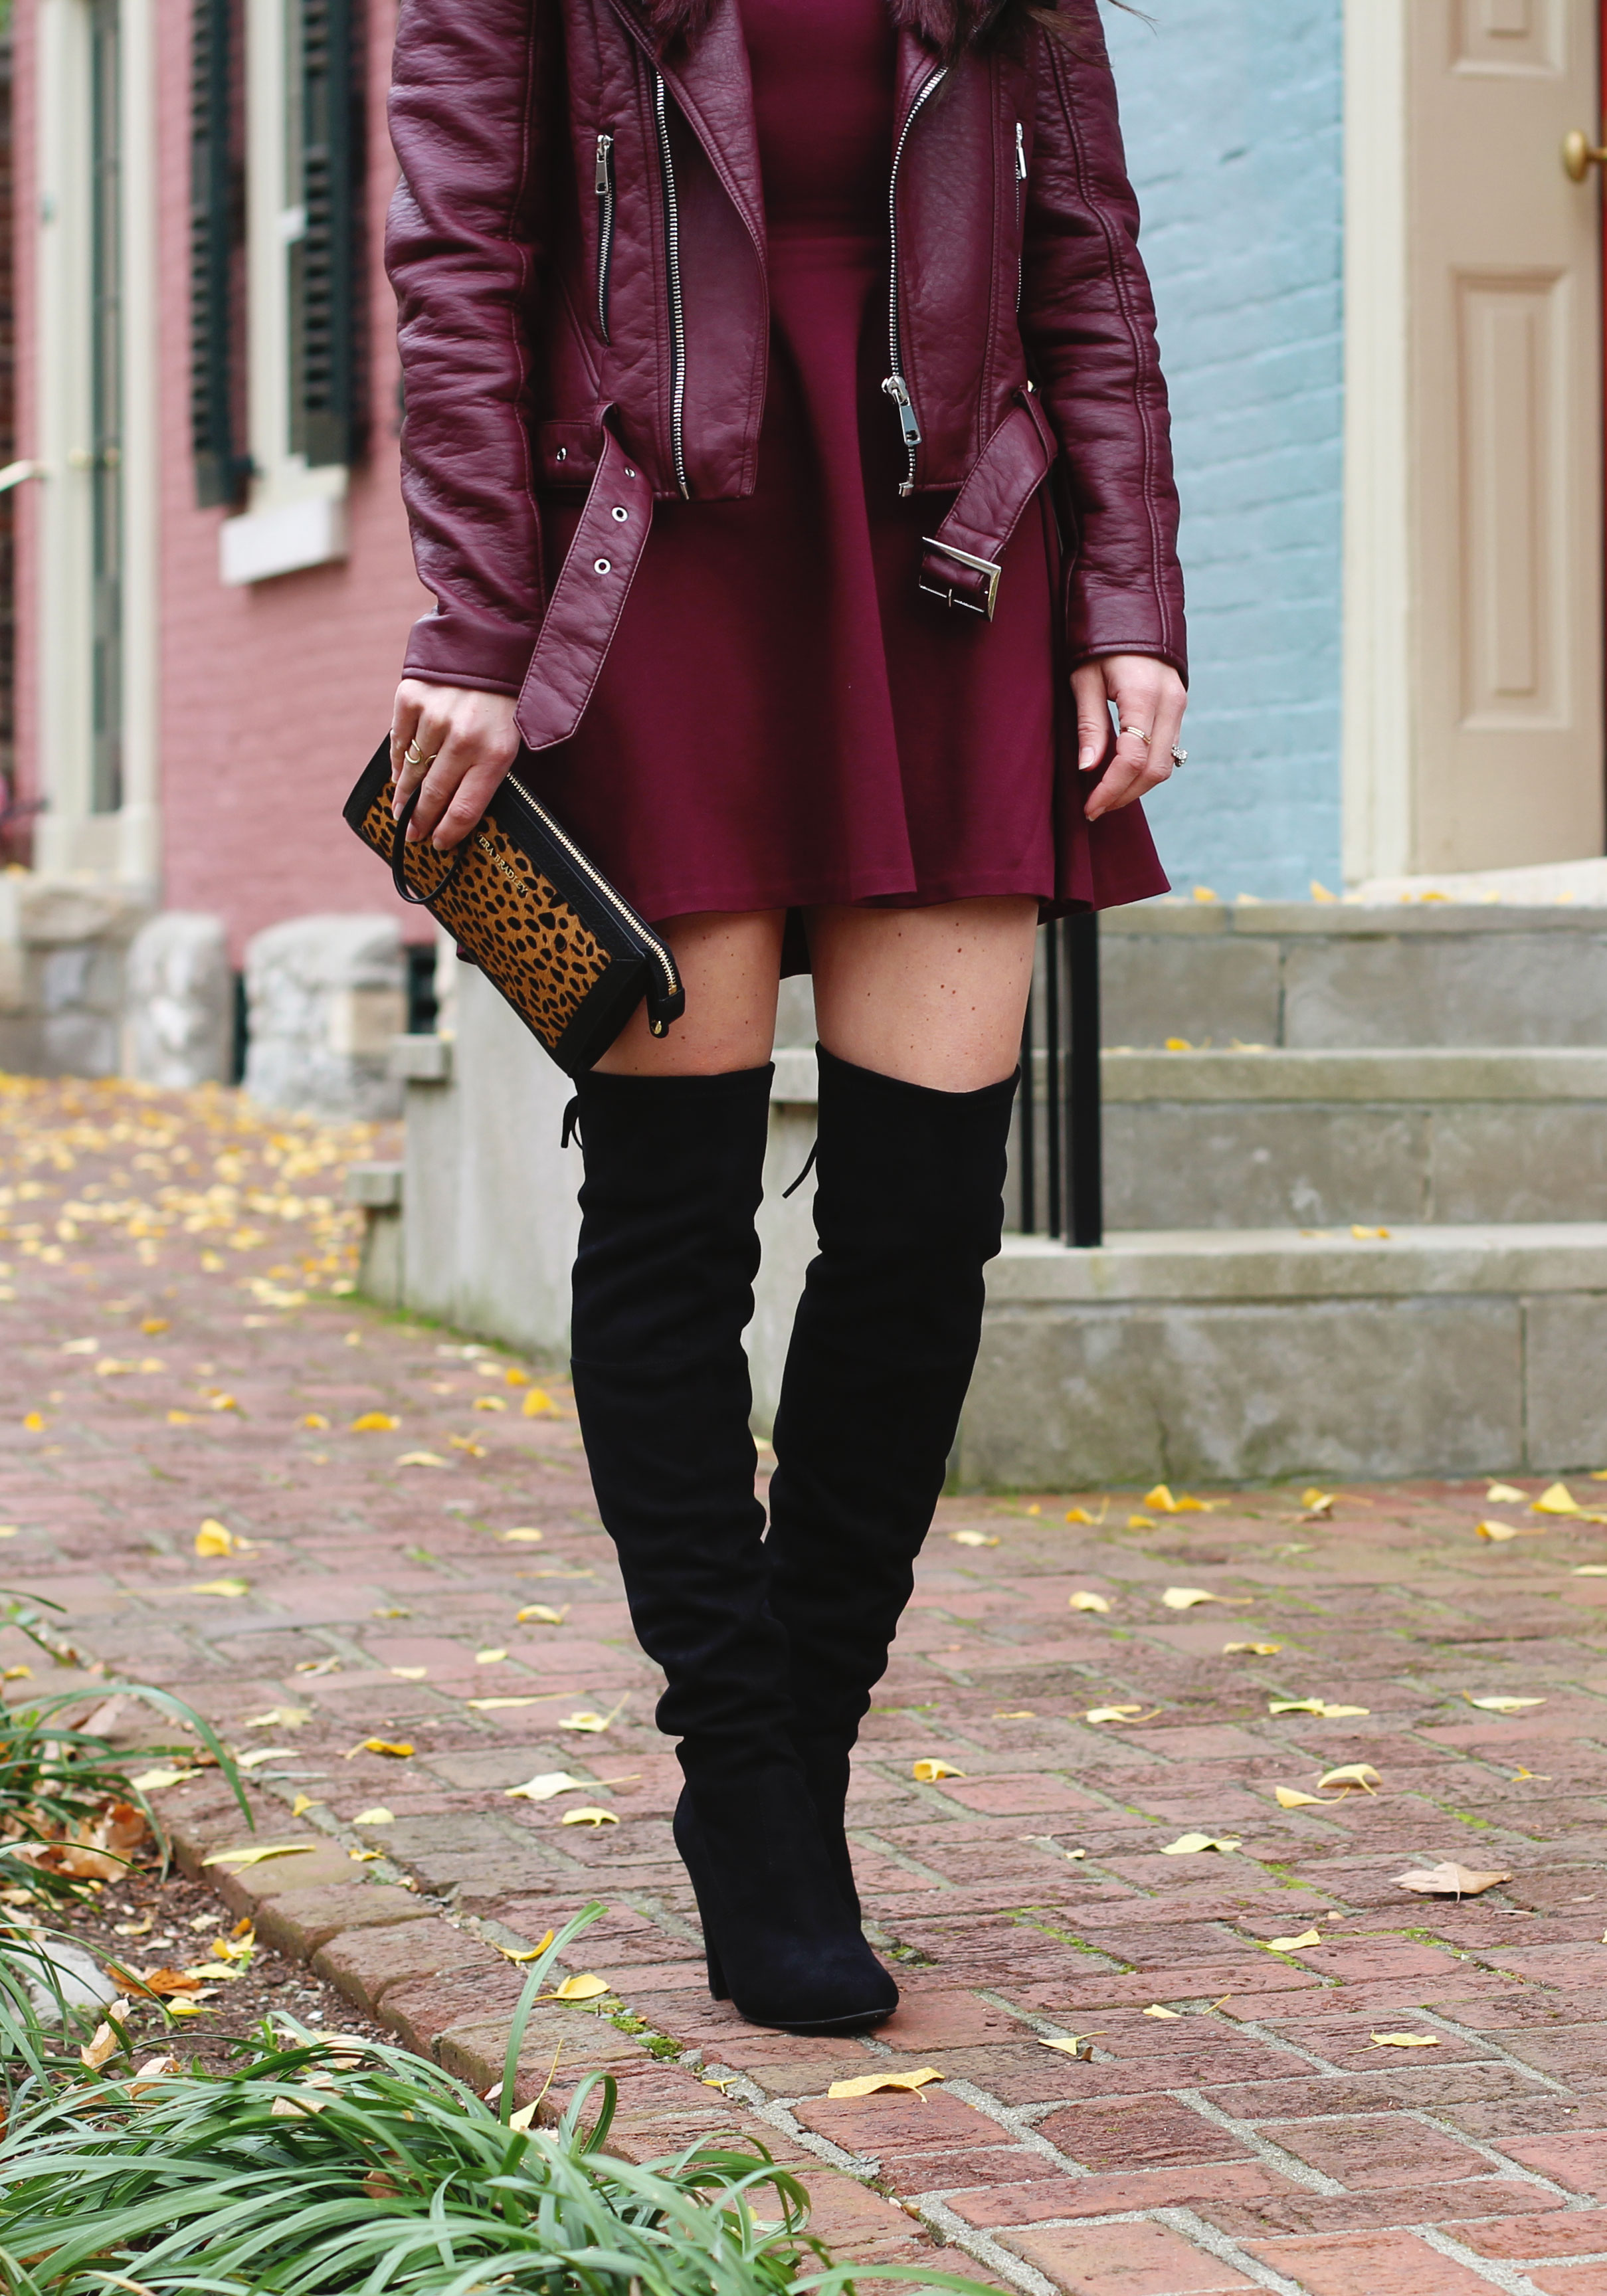 """Steve Madden re-released their popular """"Gleemer""""over-the-knee boots from last season- yay!"""